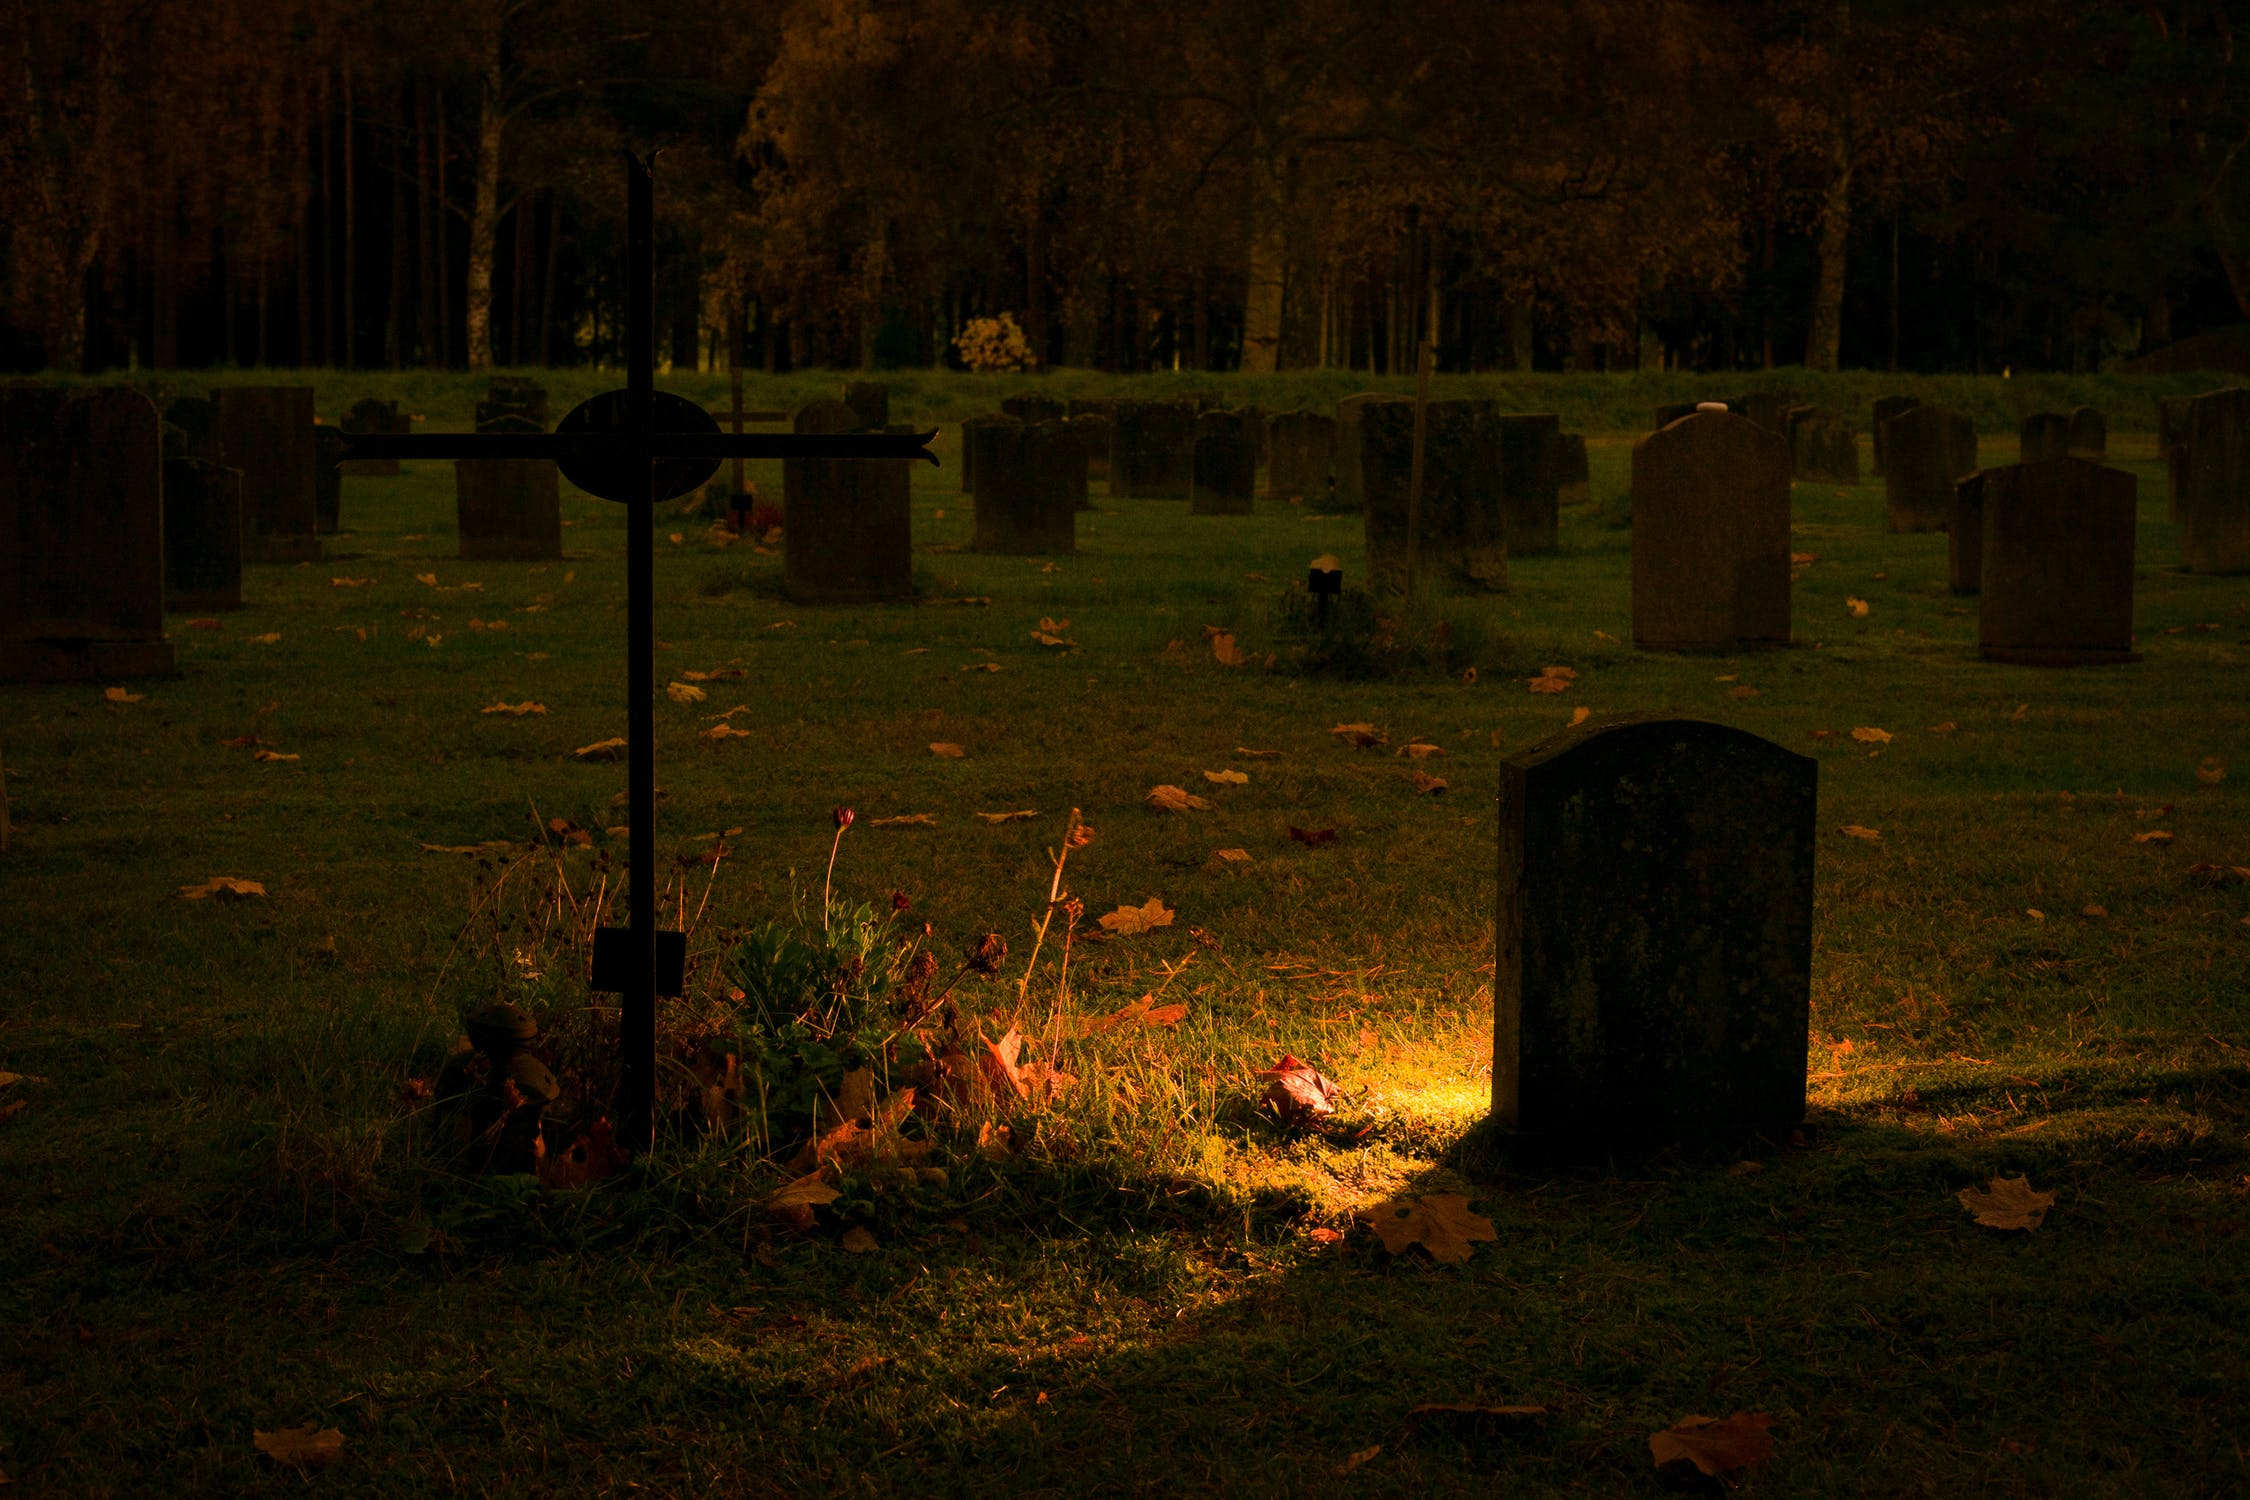 A silhouette of a gravestone in a graveyard. Stock image